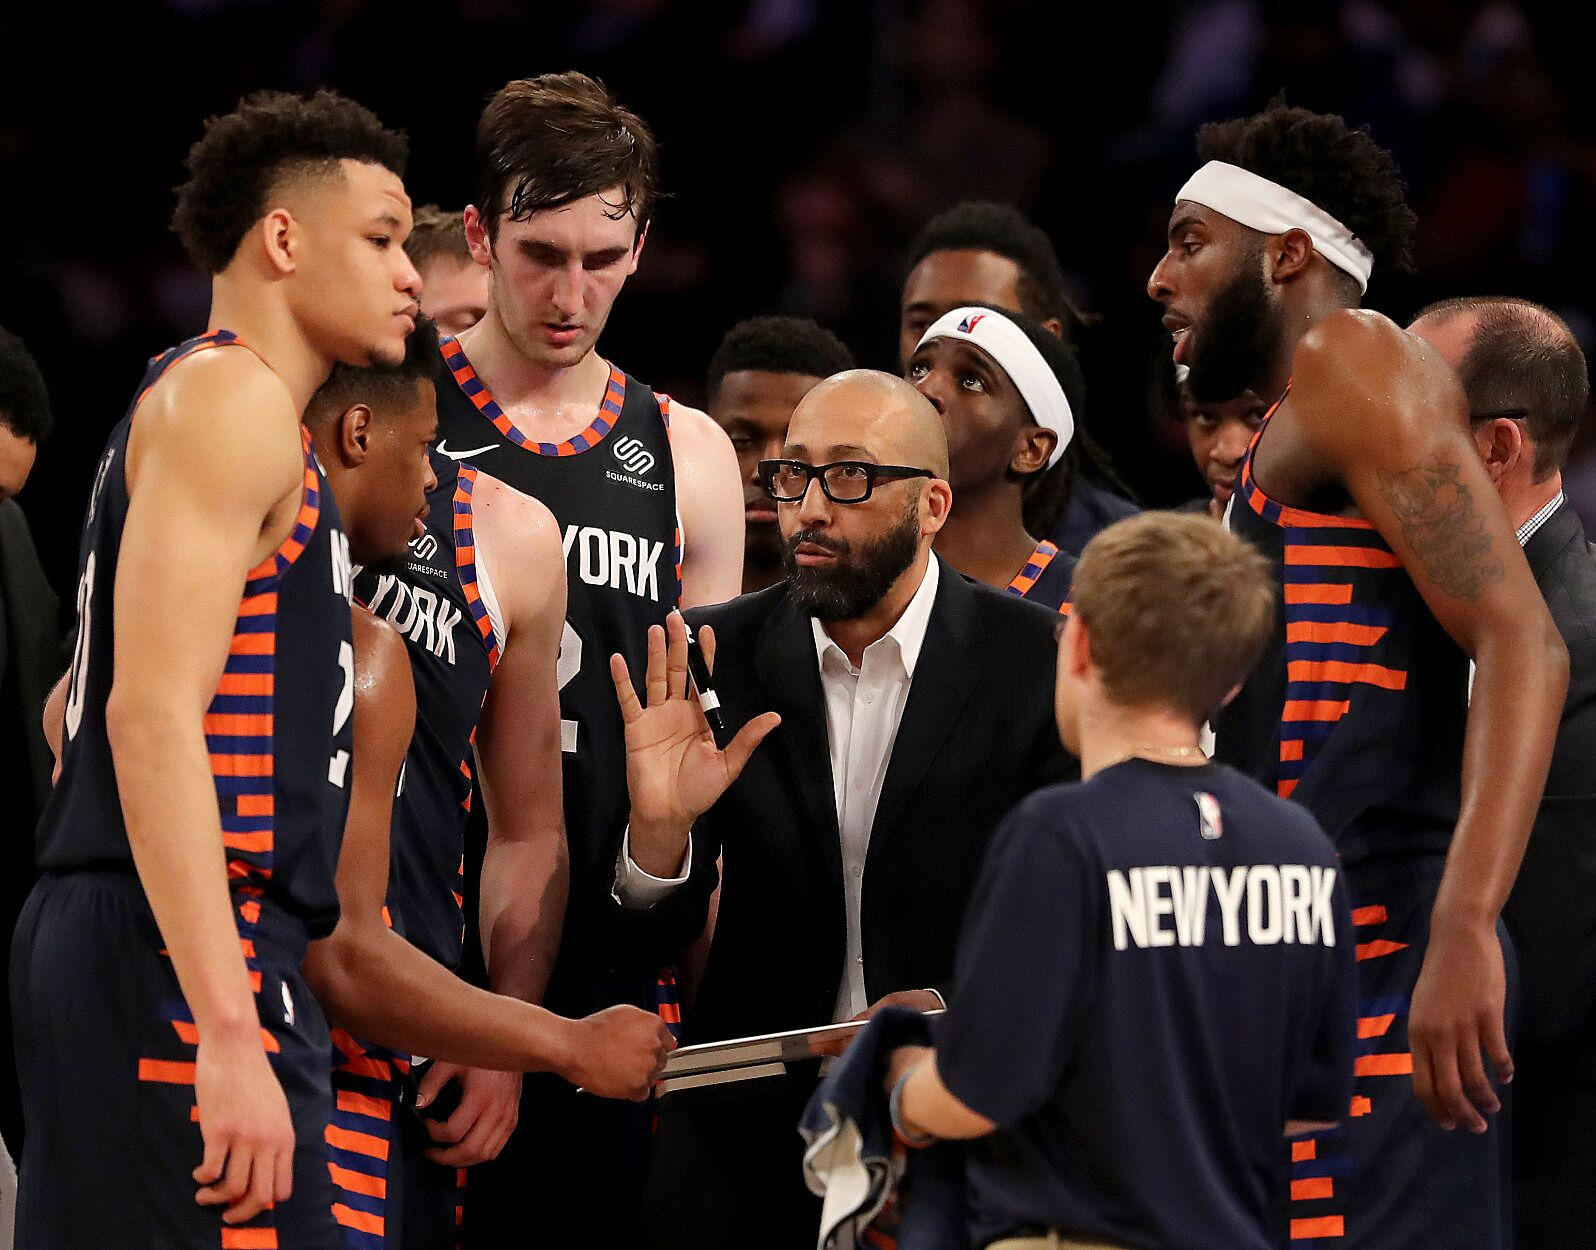 Nba Basketball New York Knicks: Duke Basketball: Which NBA Team Is The Best Fit For Zion Williamson